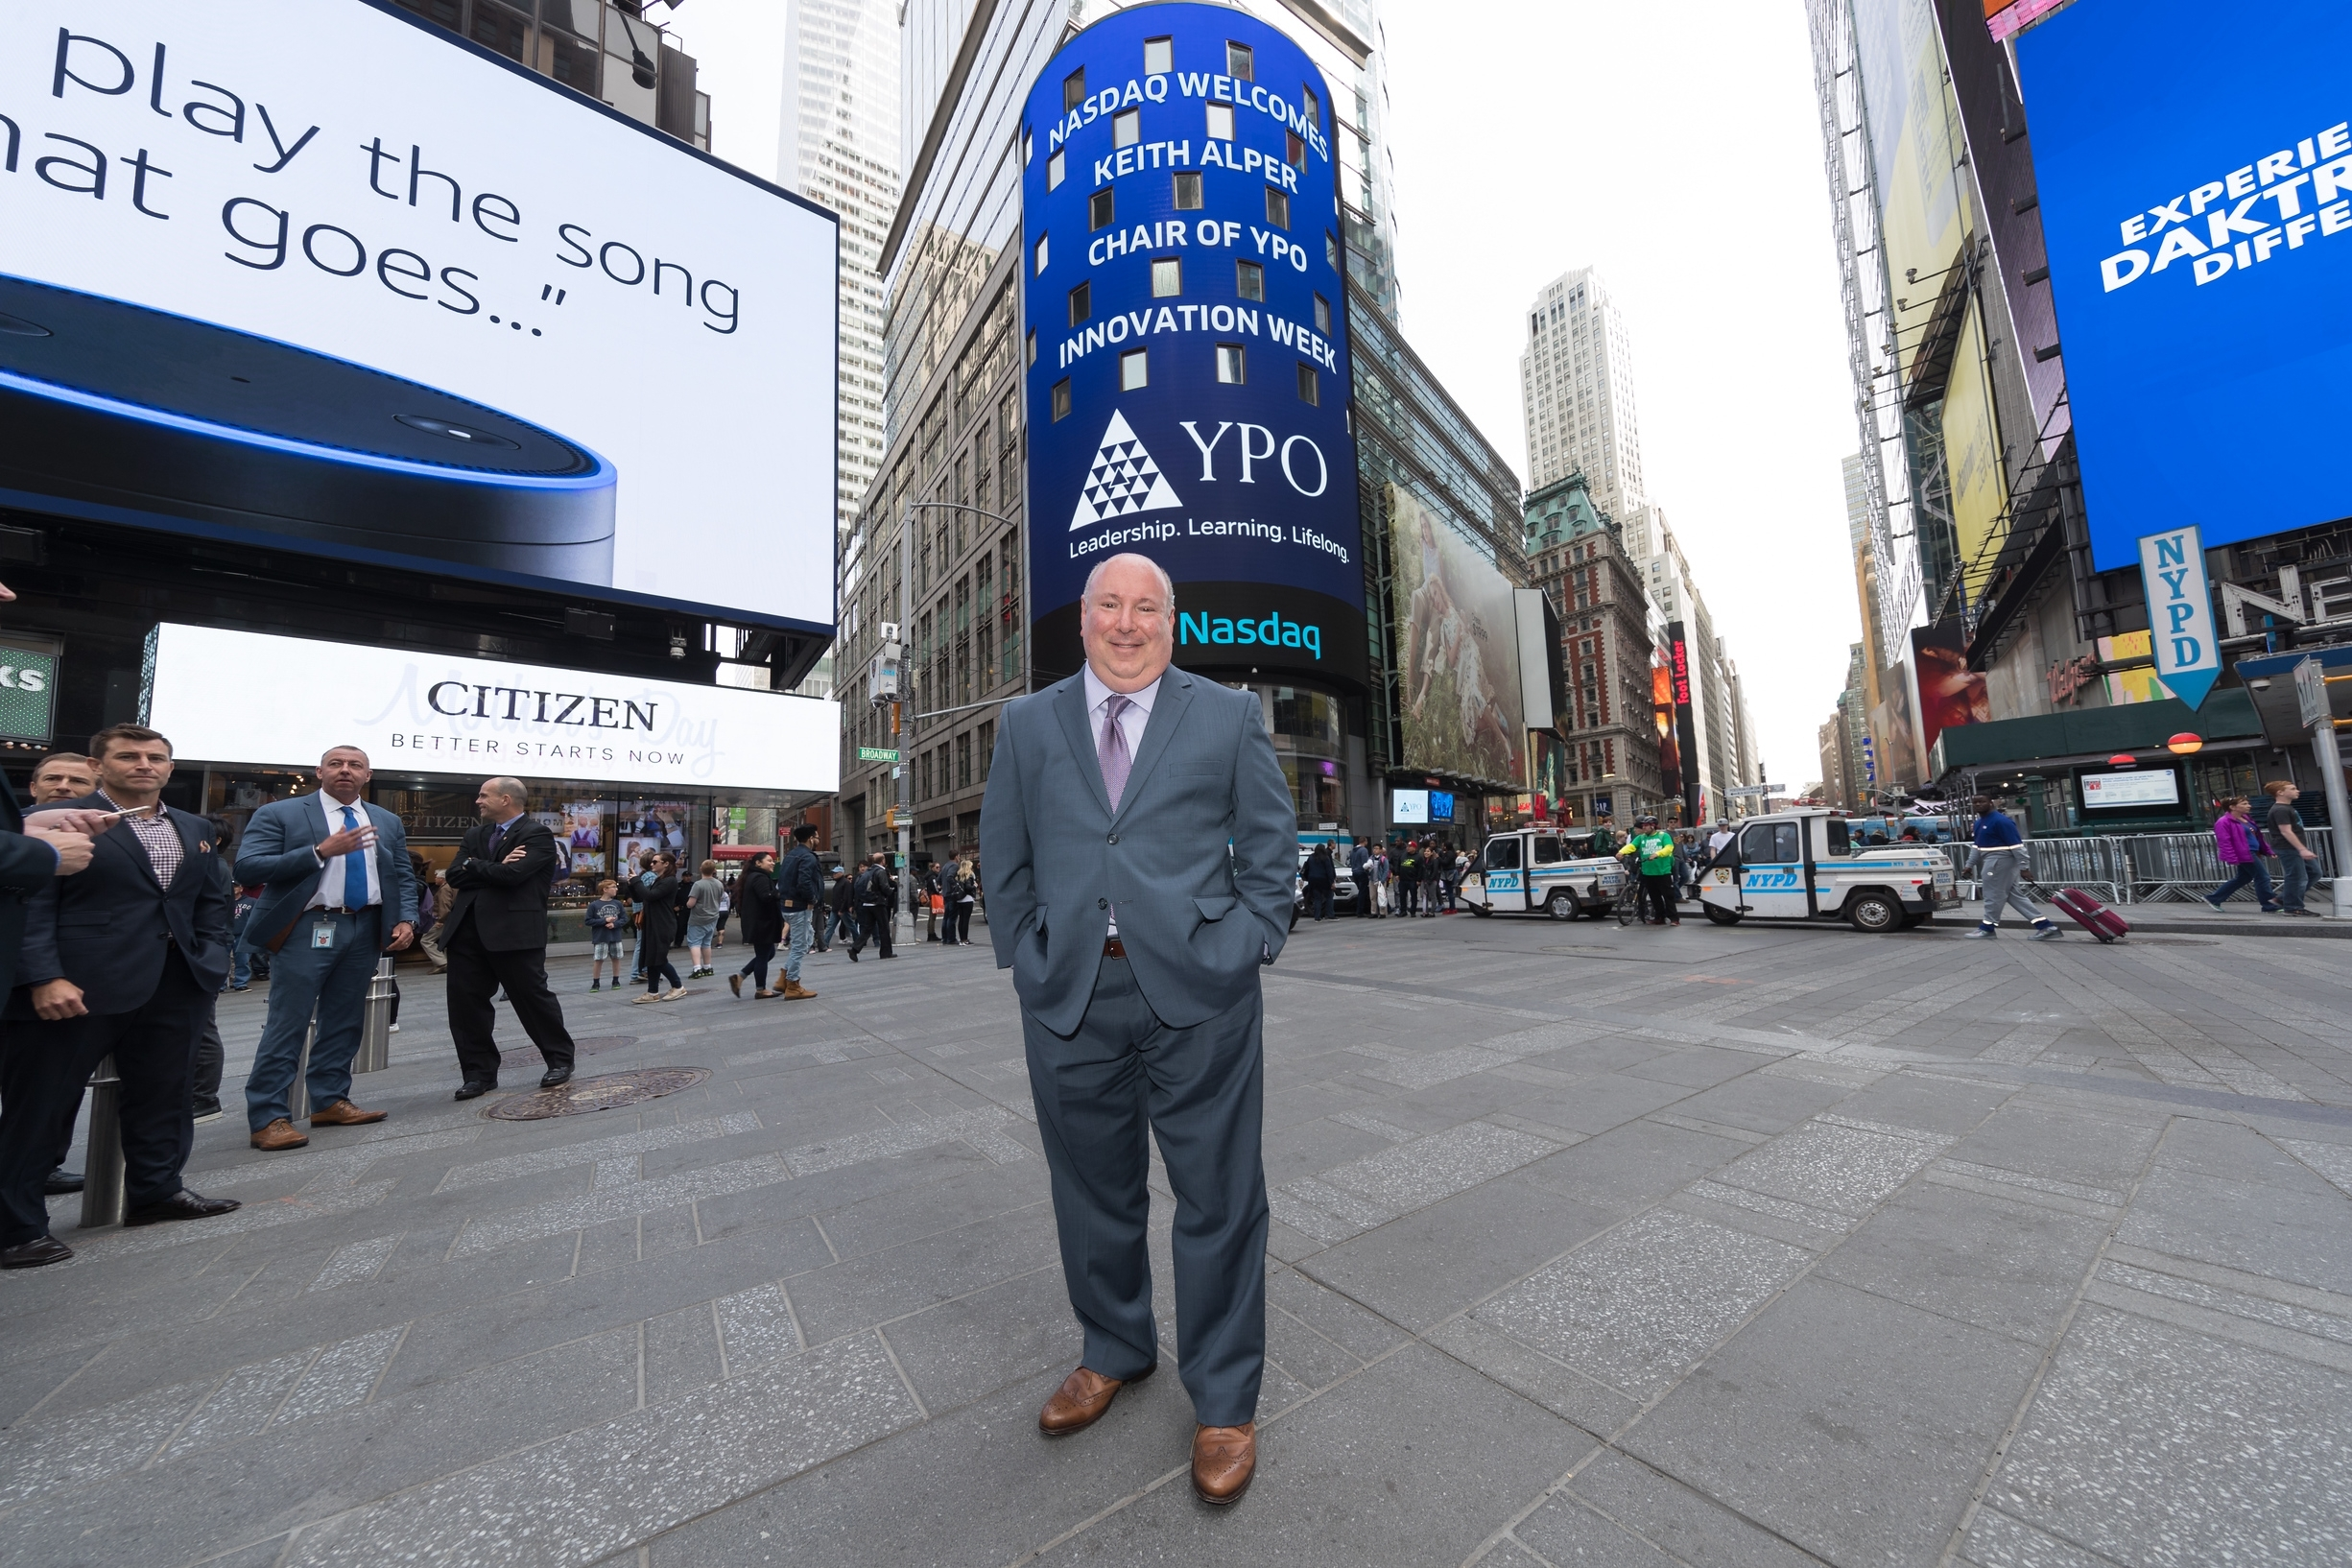 Keith Alper  NYC Times Square/Nasdaq. Keith serves as Global Chairman of YPO Innovation Week.